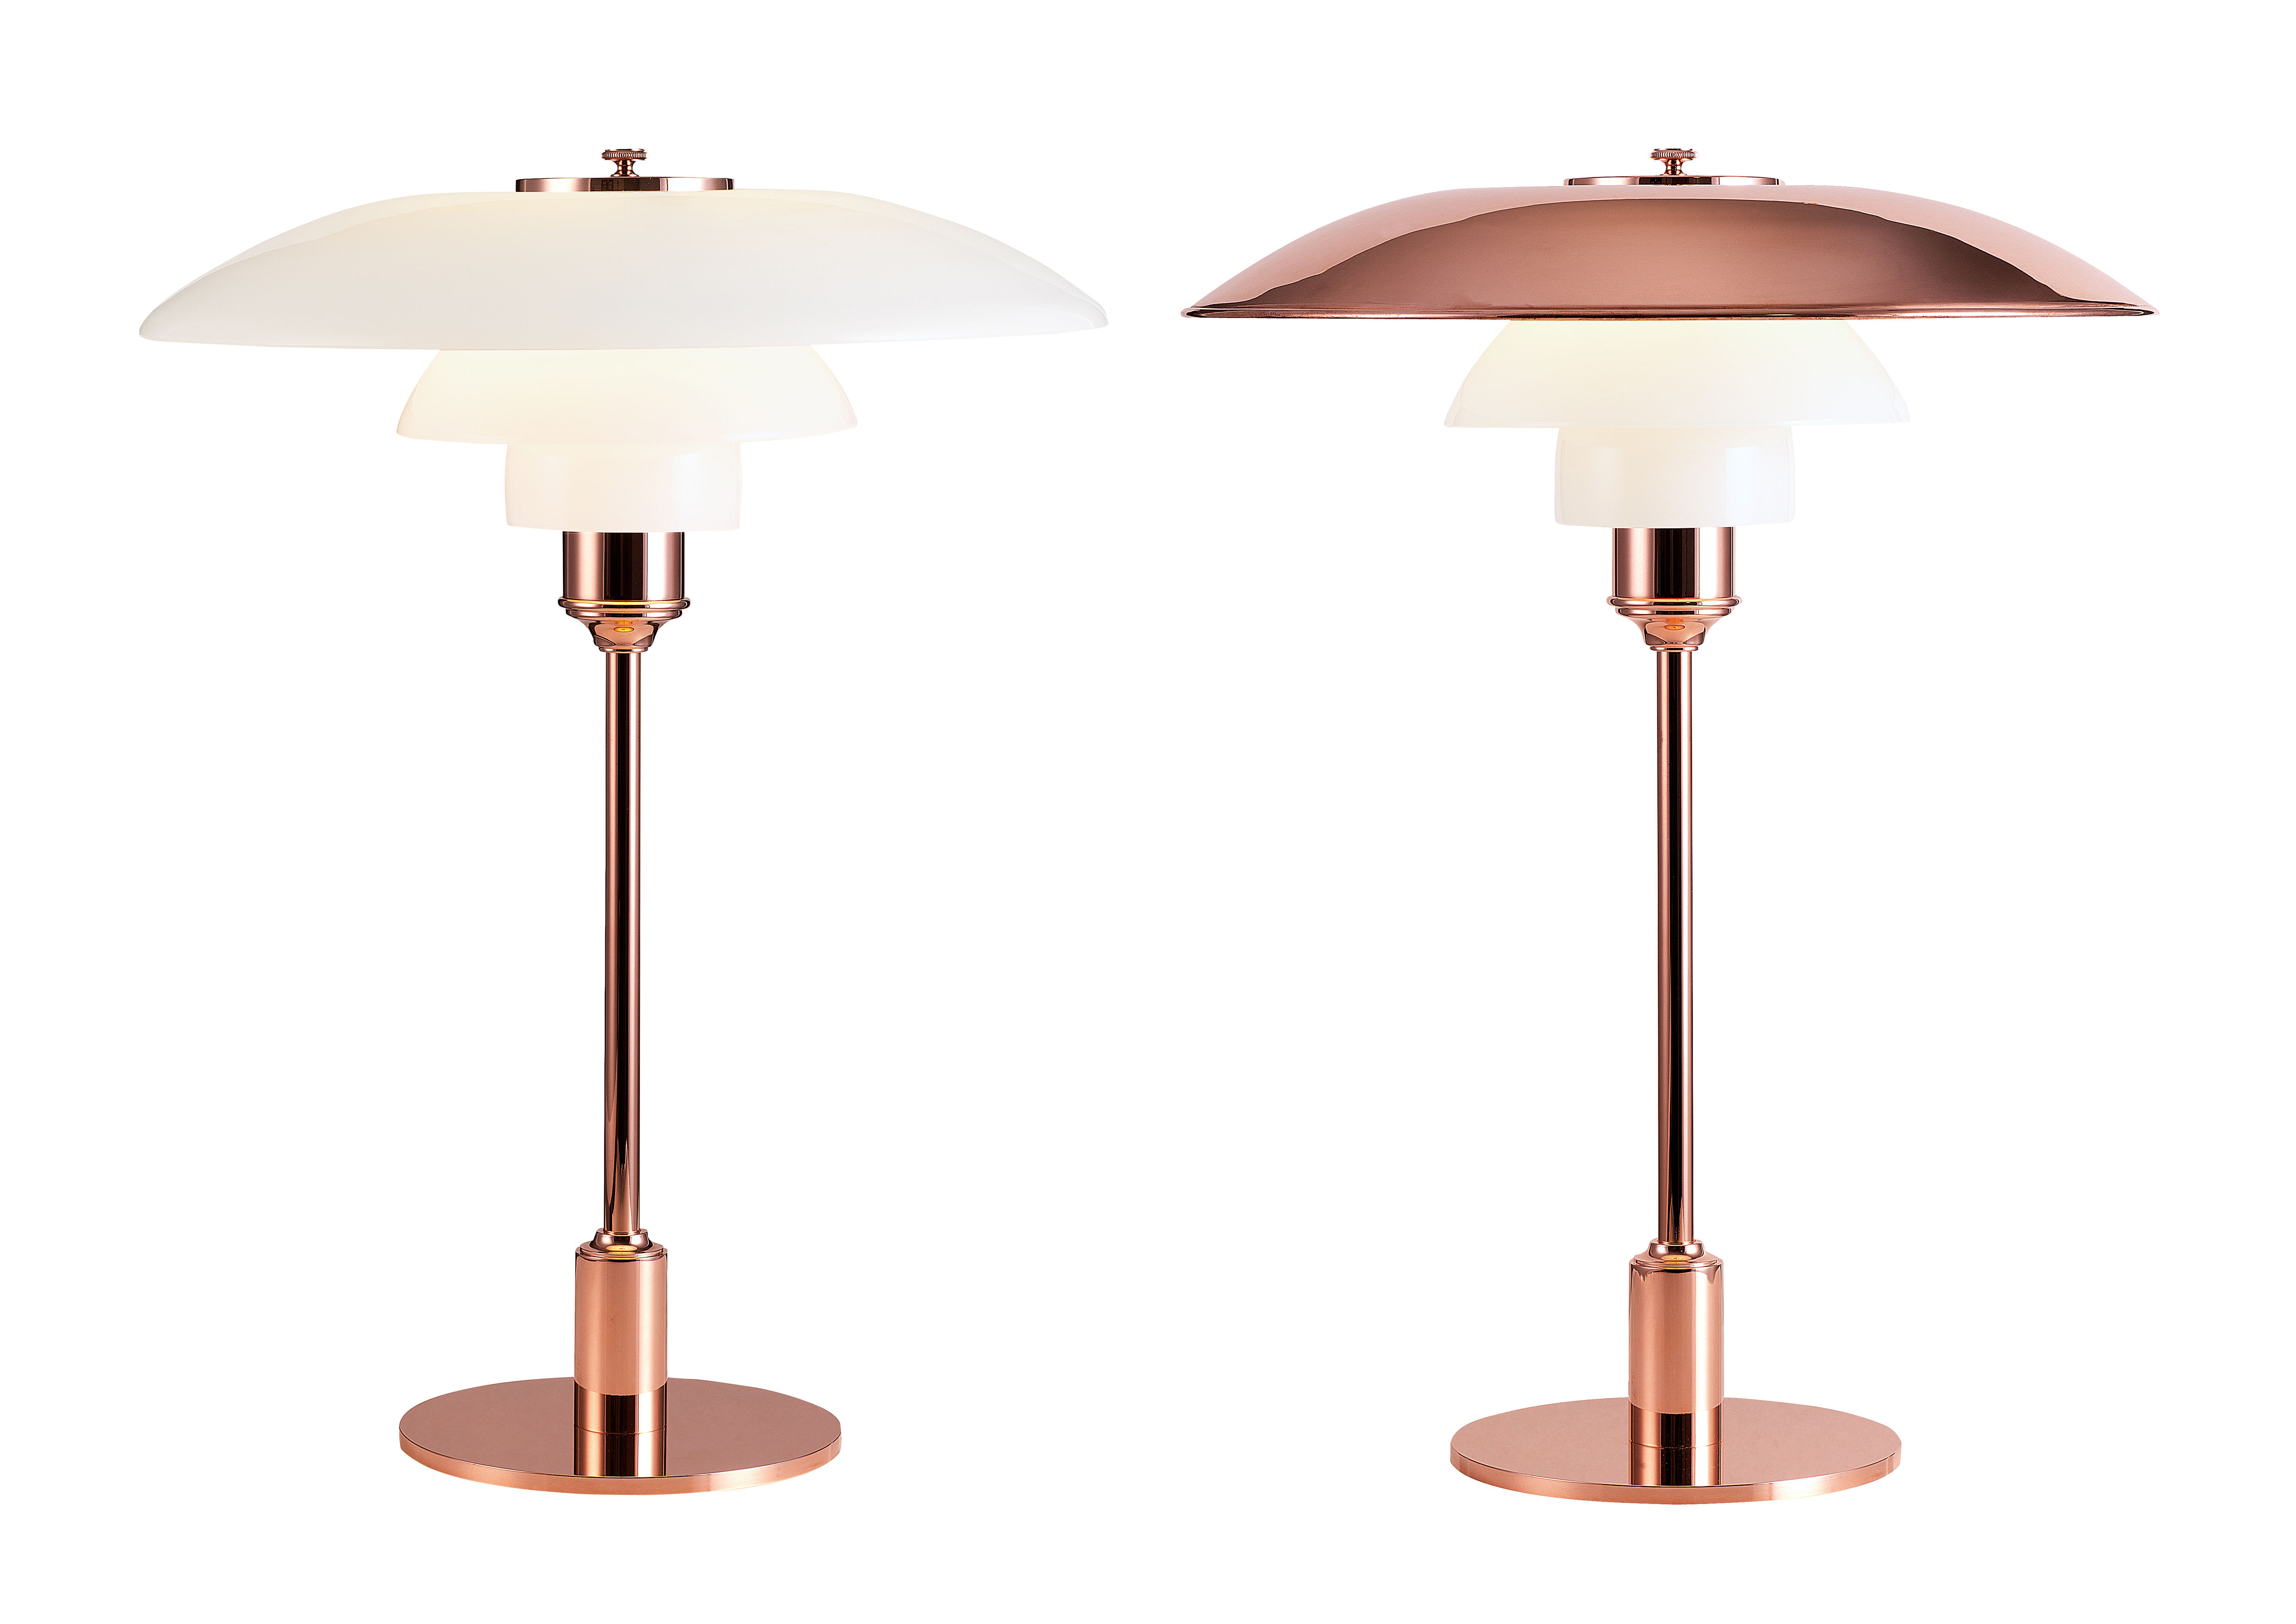 ph 3 2 table lamp copper limited edition copper by. Black Bedroom Furniture Sets. Home Design Ideas